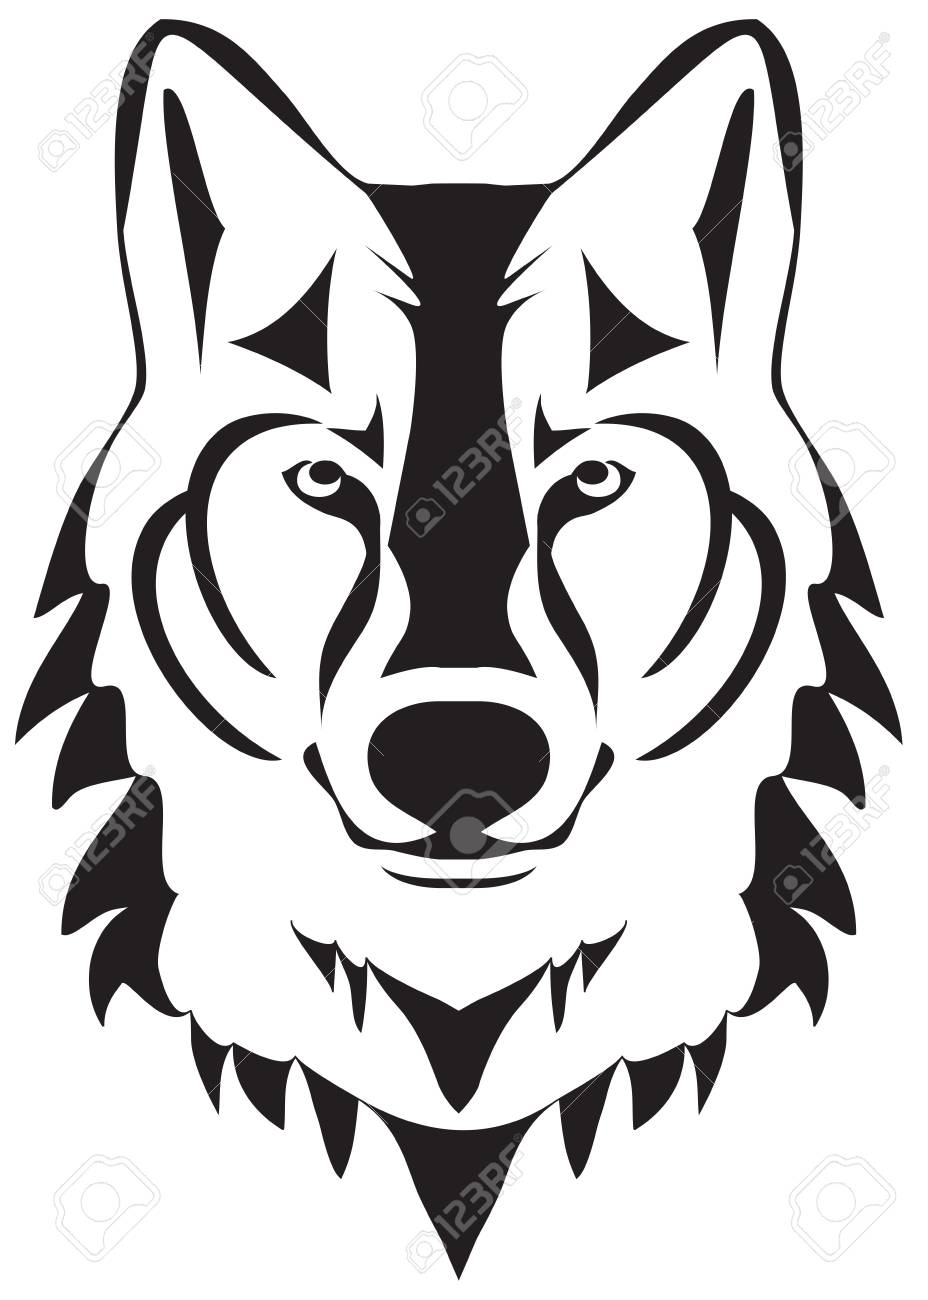 Vector Illustration Of A Wolf Head Silhouette Royalty Free